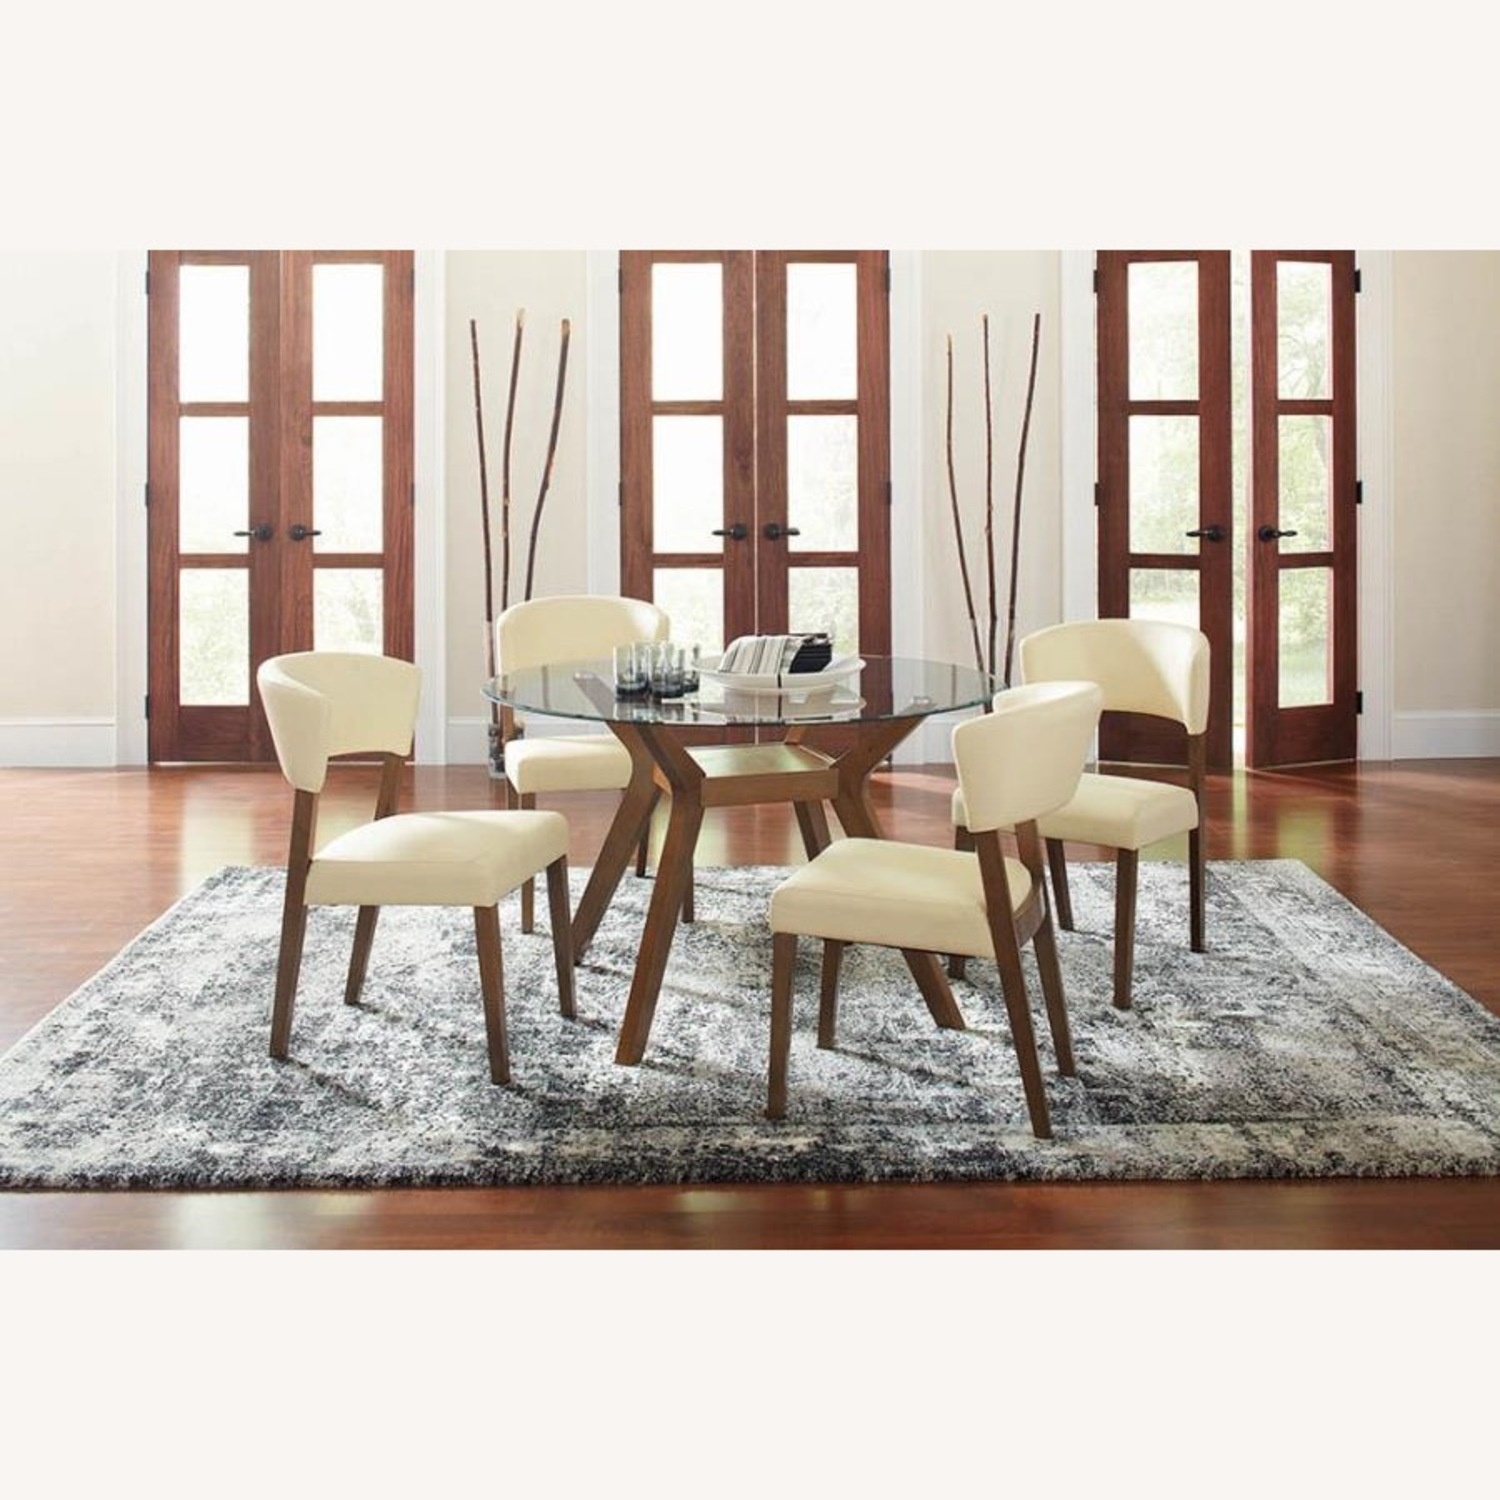 Retro Side Chair In Nutmeg & Cream Leatherette - image-7